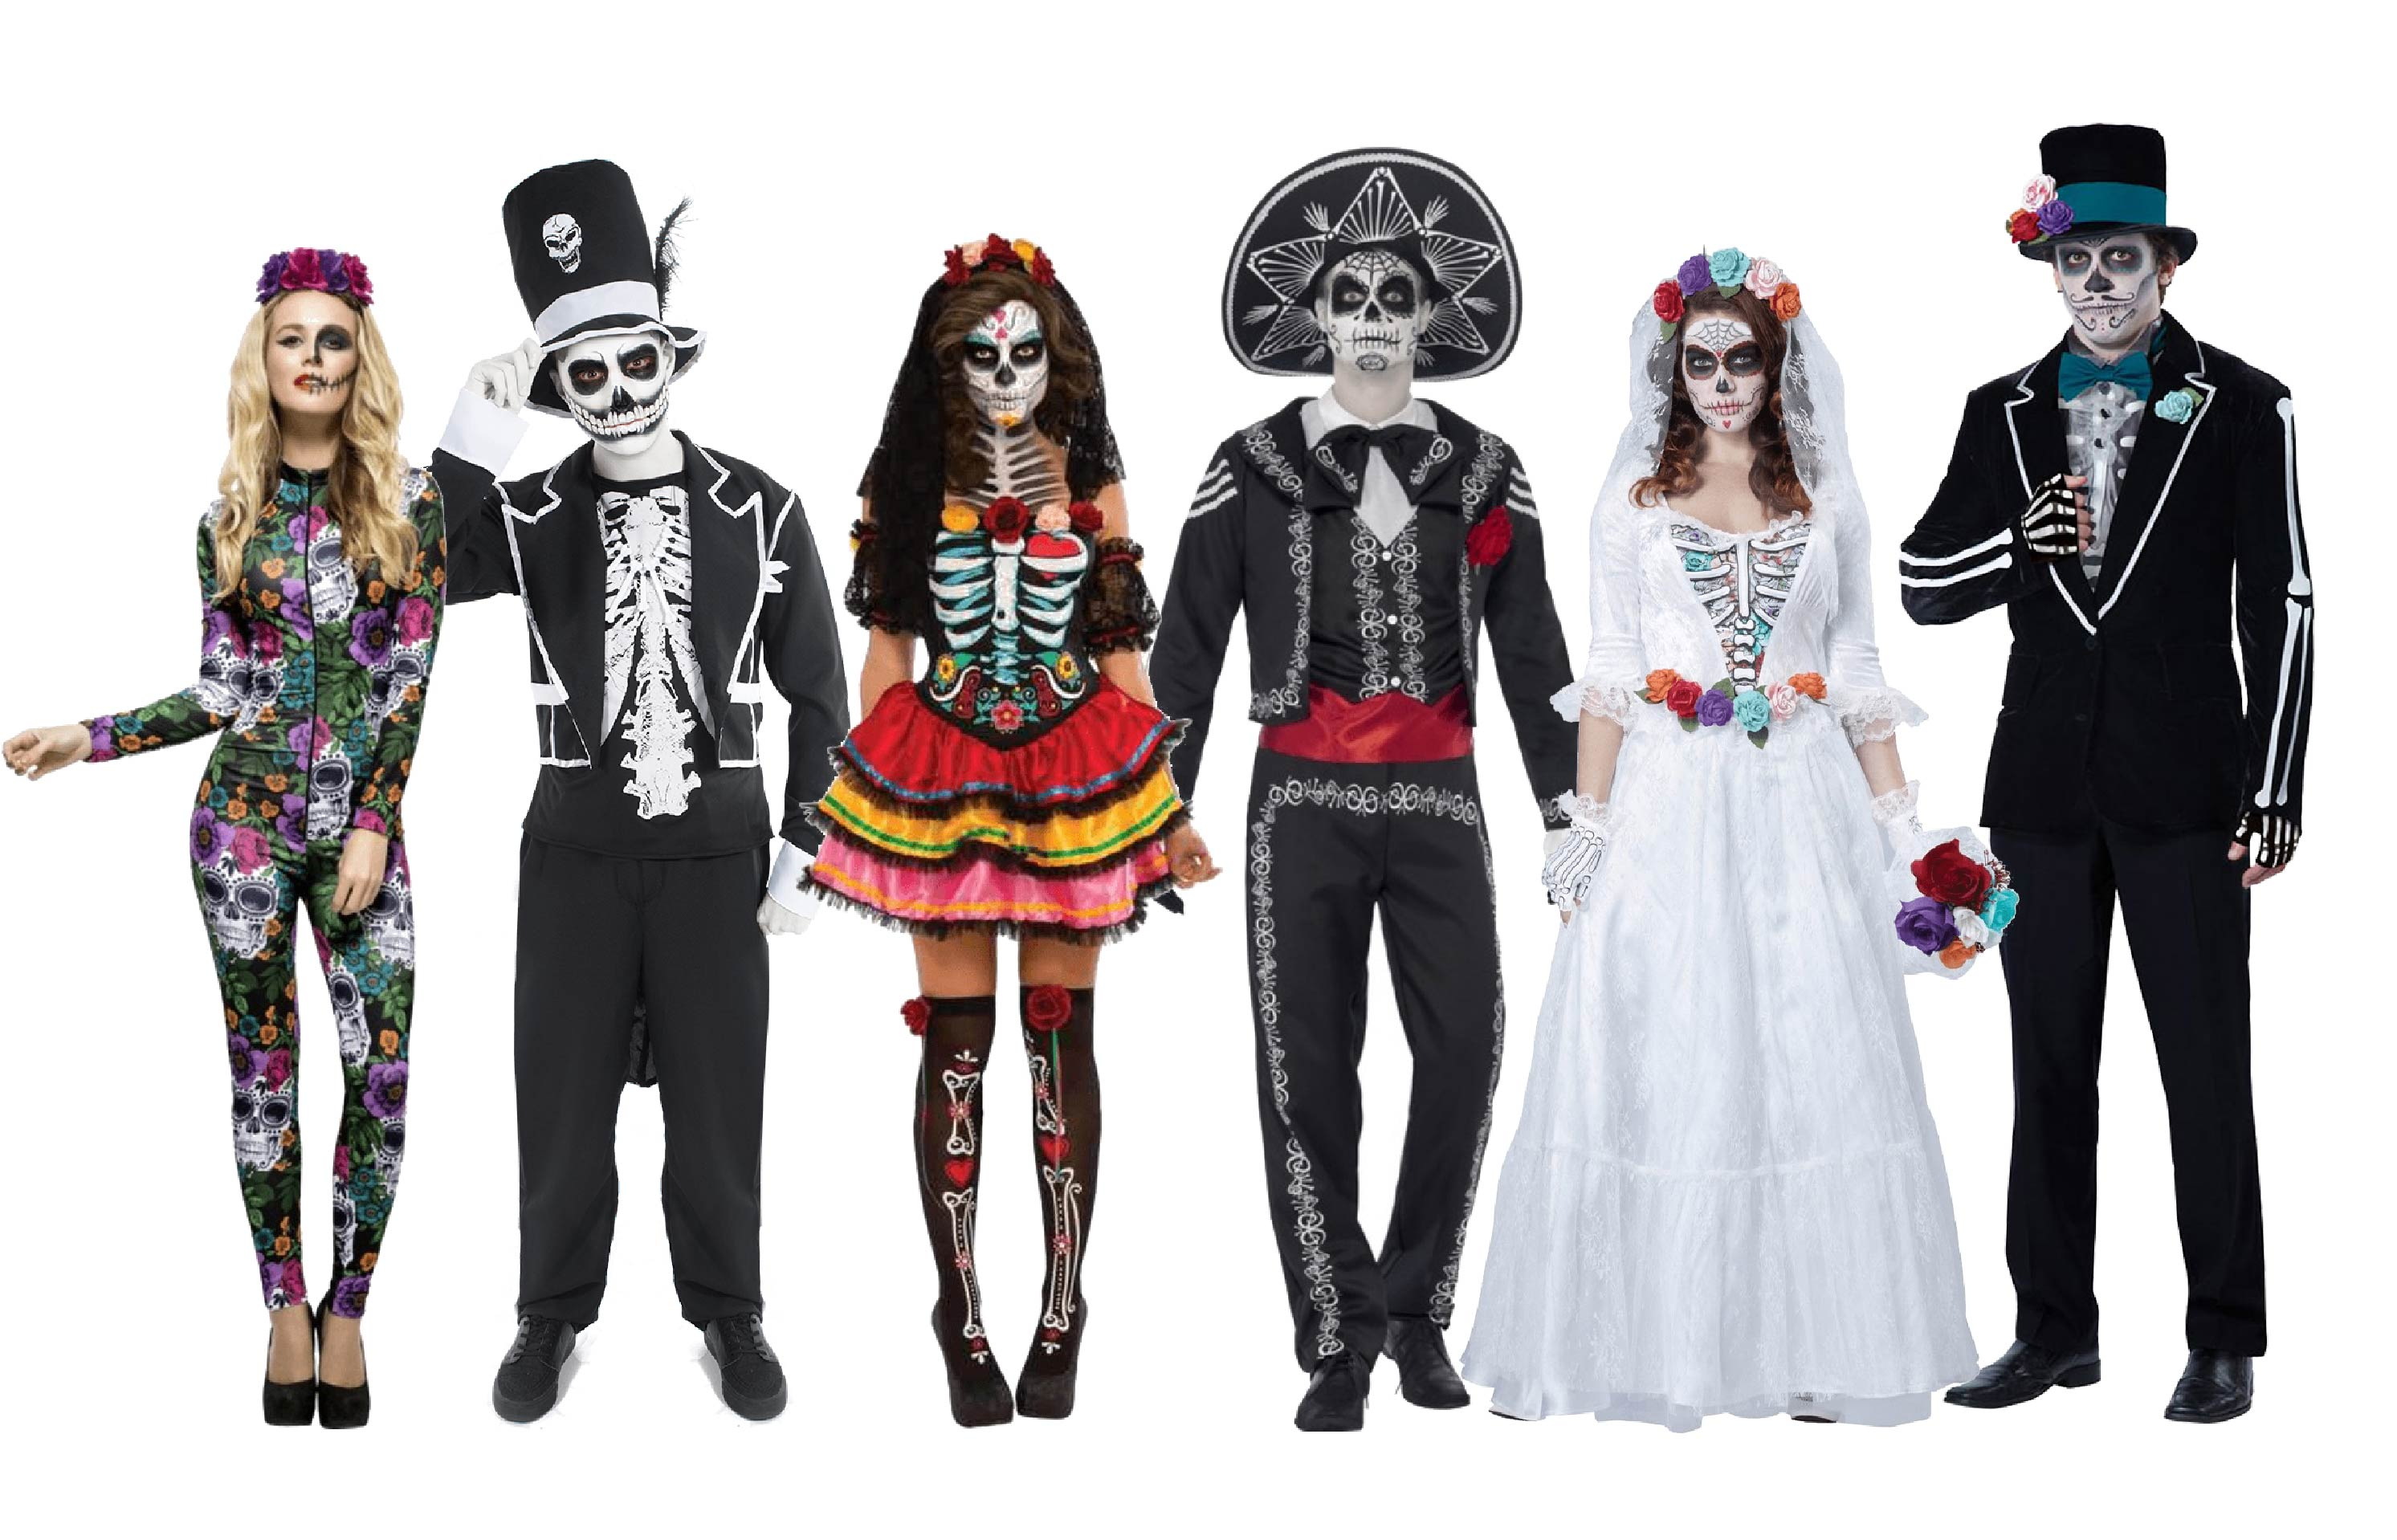 Group of people wearing Day of the Dead group costumes.